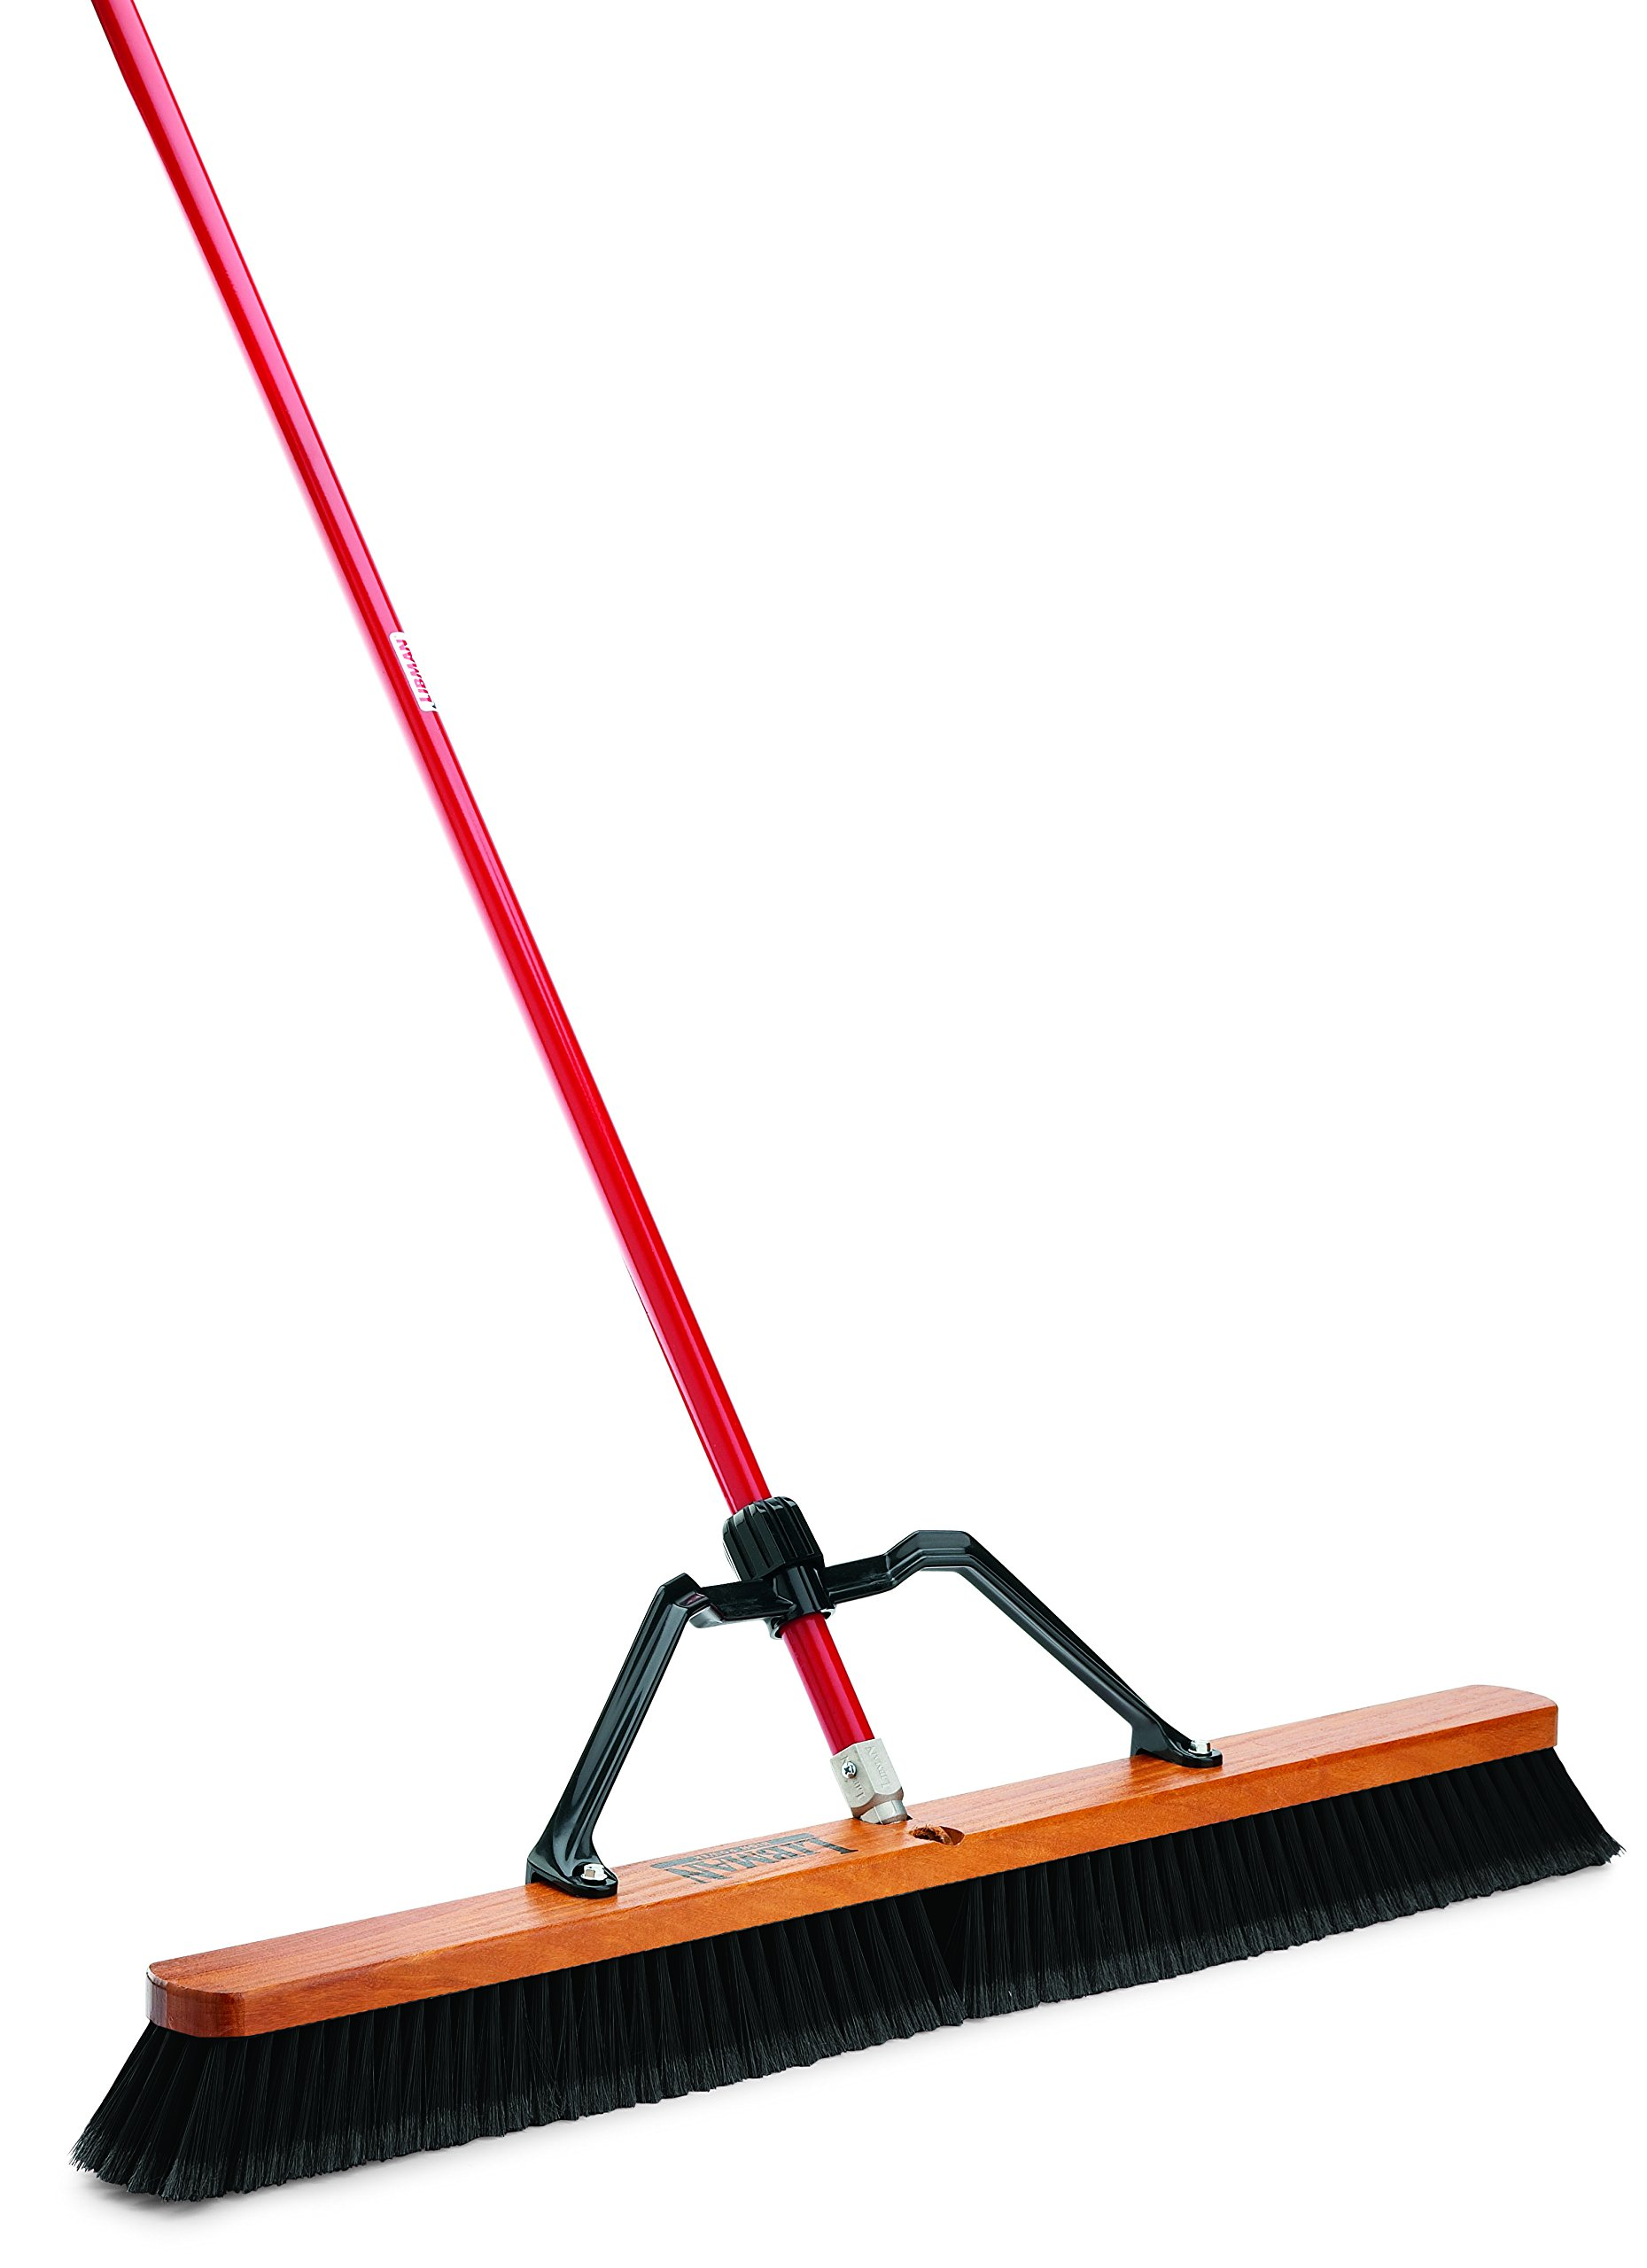 Libman Commercial 850 Smooth Surface Heavy Duty Push Broom, 62'' Length, 36'' Width, Black/Red (Pack of 3)